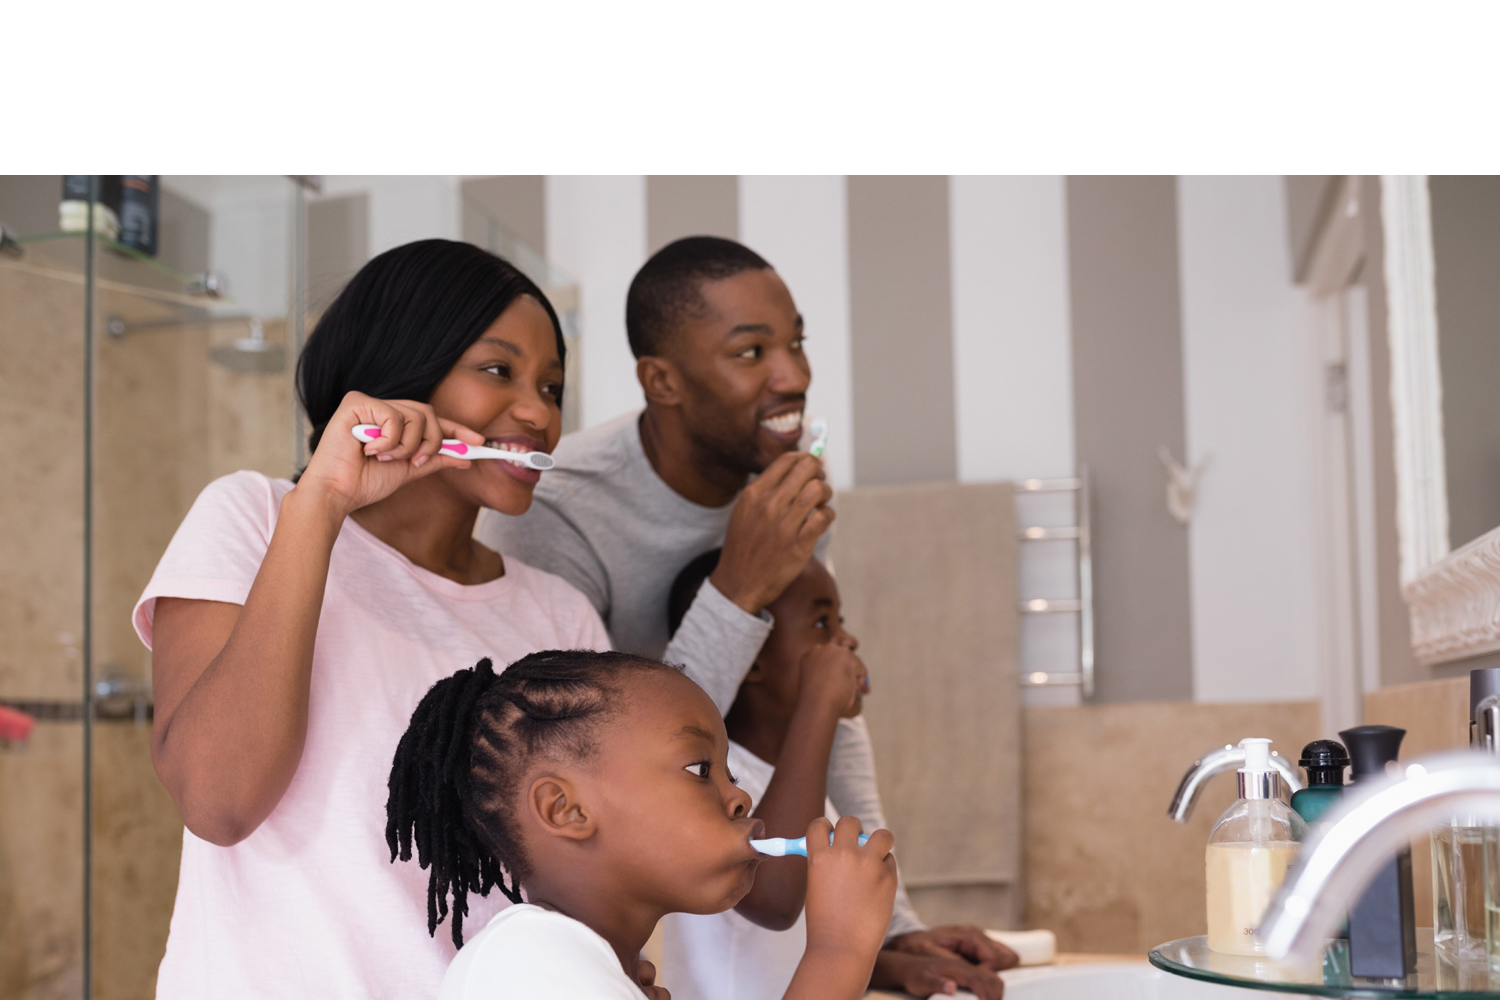 Parents with children brushing teeth in bathroom at home